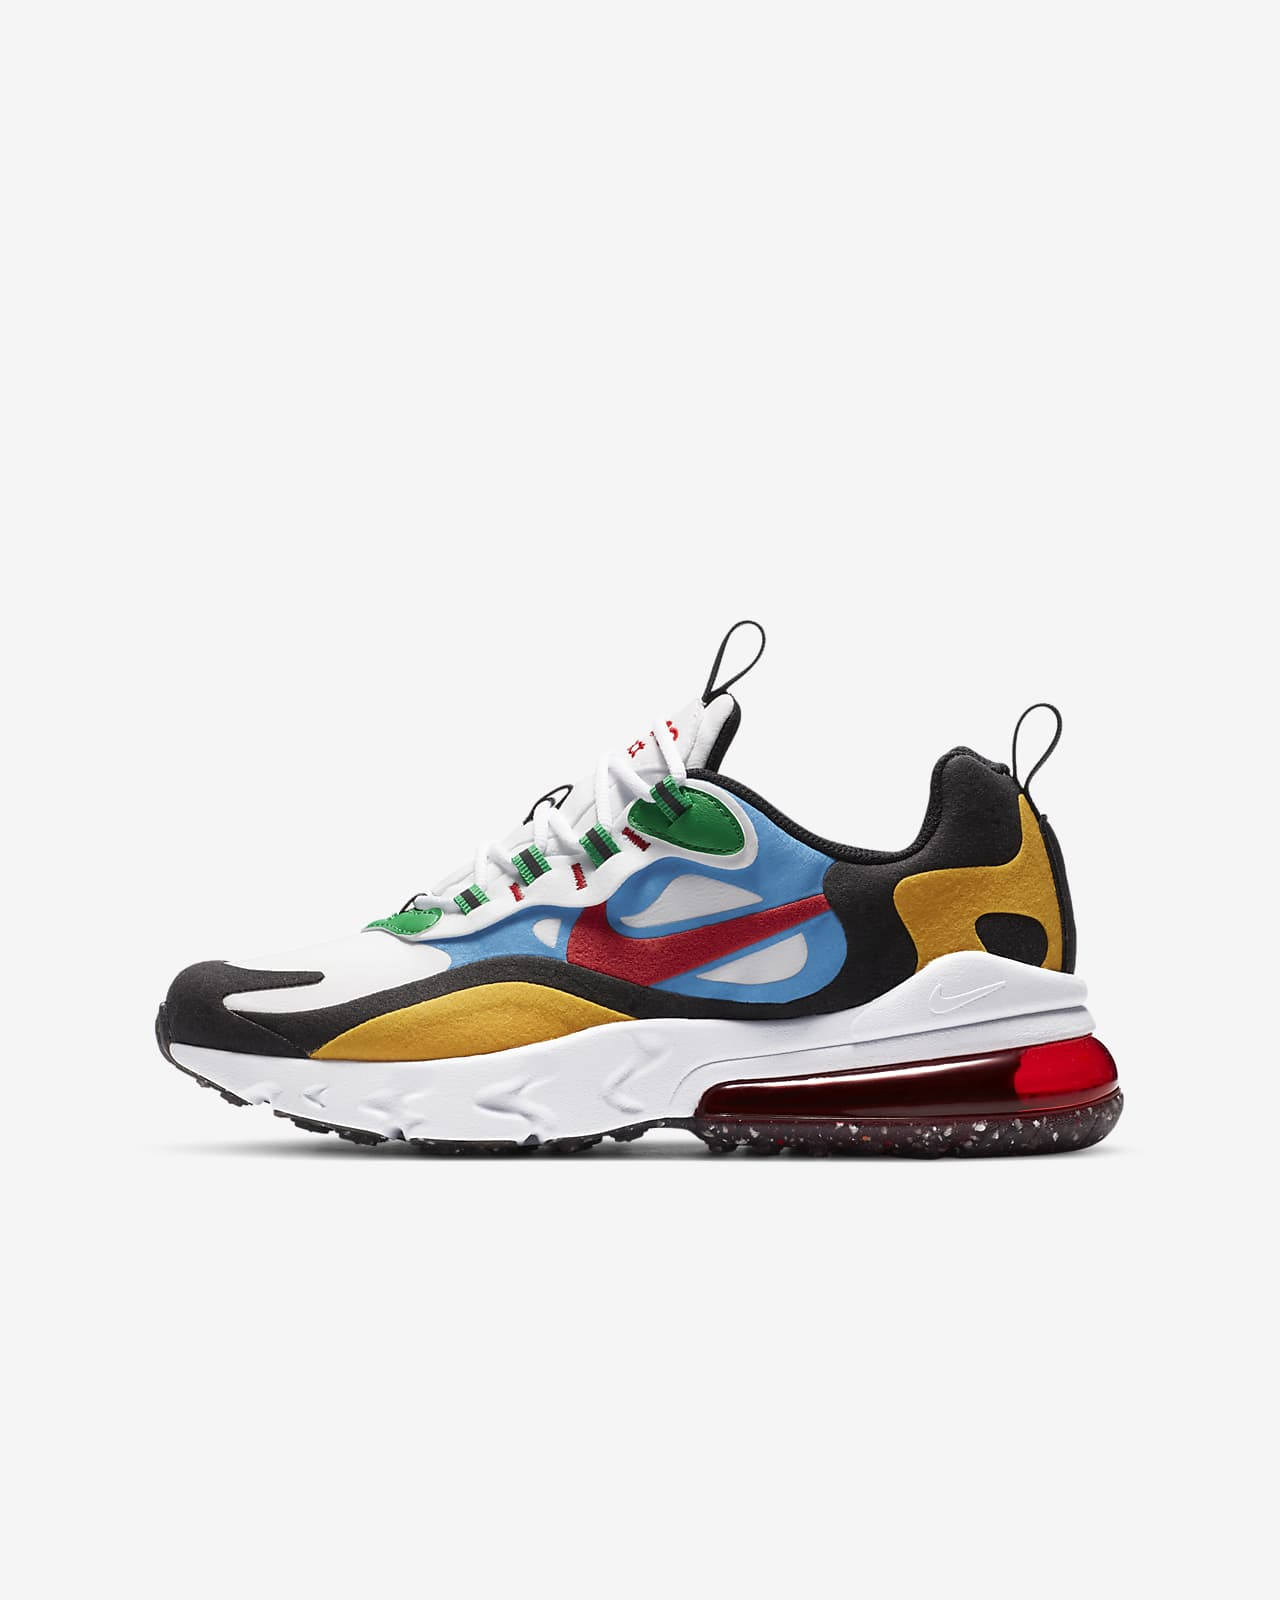 Nike Air Max 270 React BG 大童运动童鞋